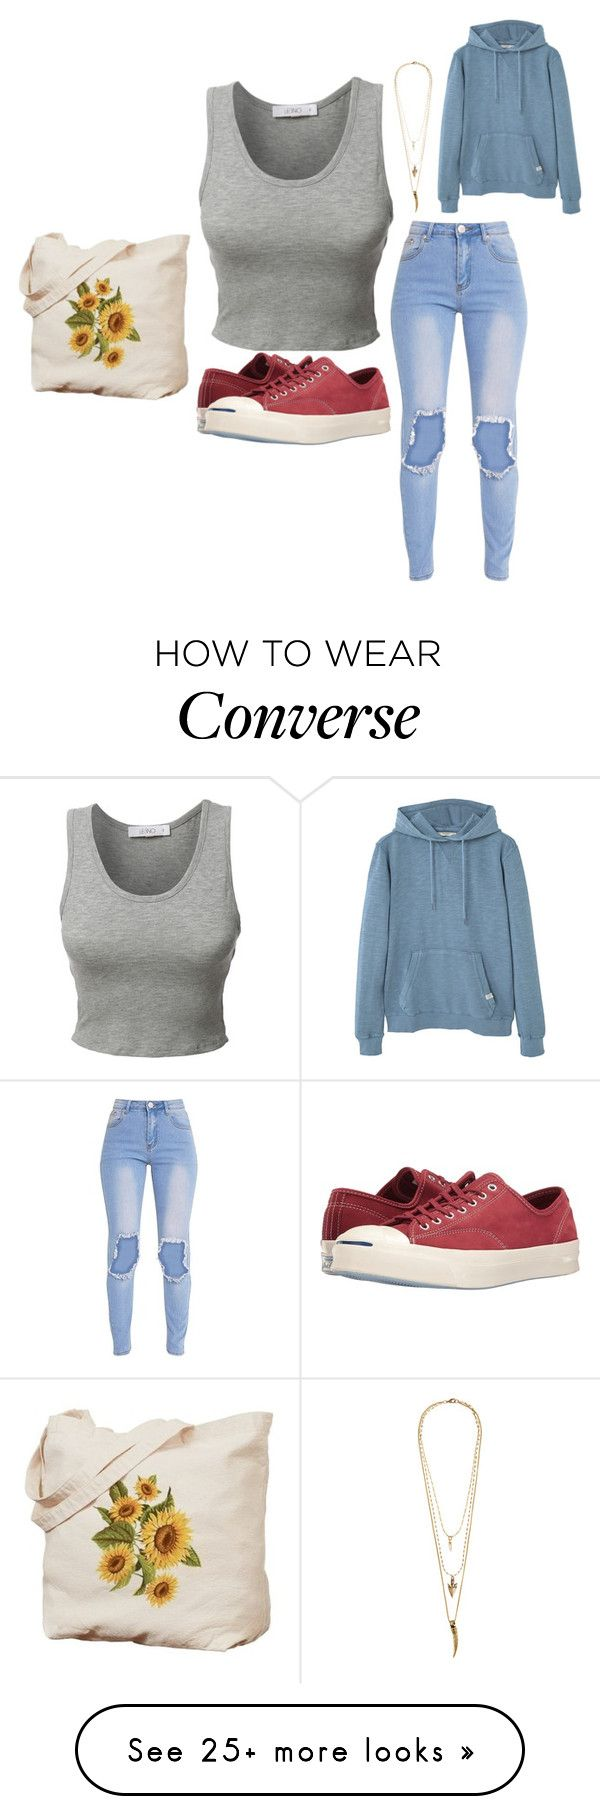 """""""Eva"""" by bambi2014 on Polyvore featuring LE3NO, Converse, Lacey Ryan and MANGO"""